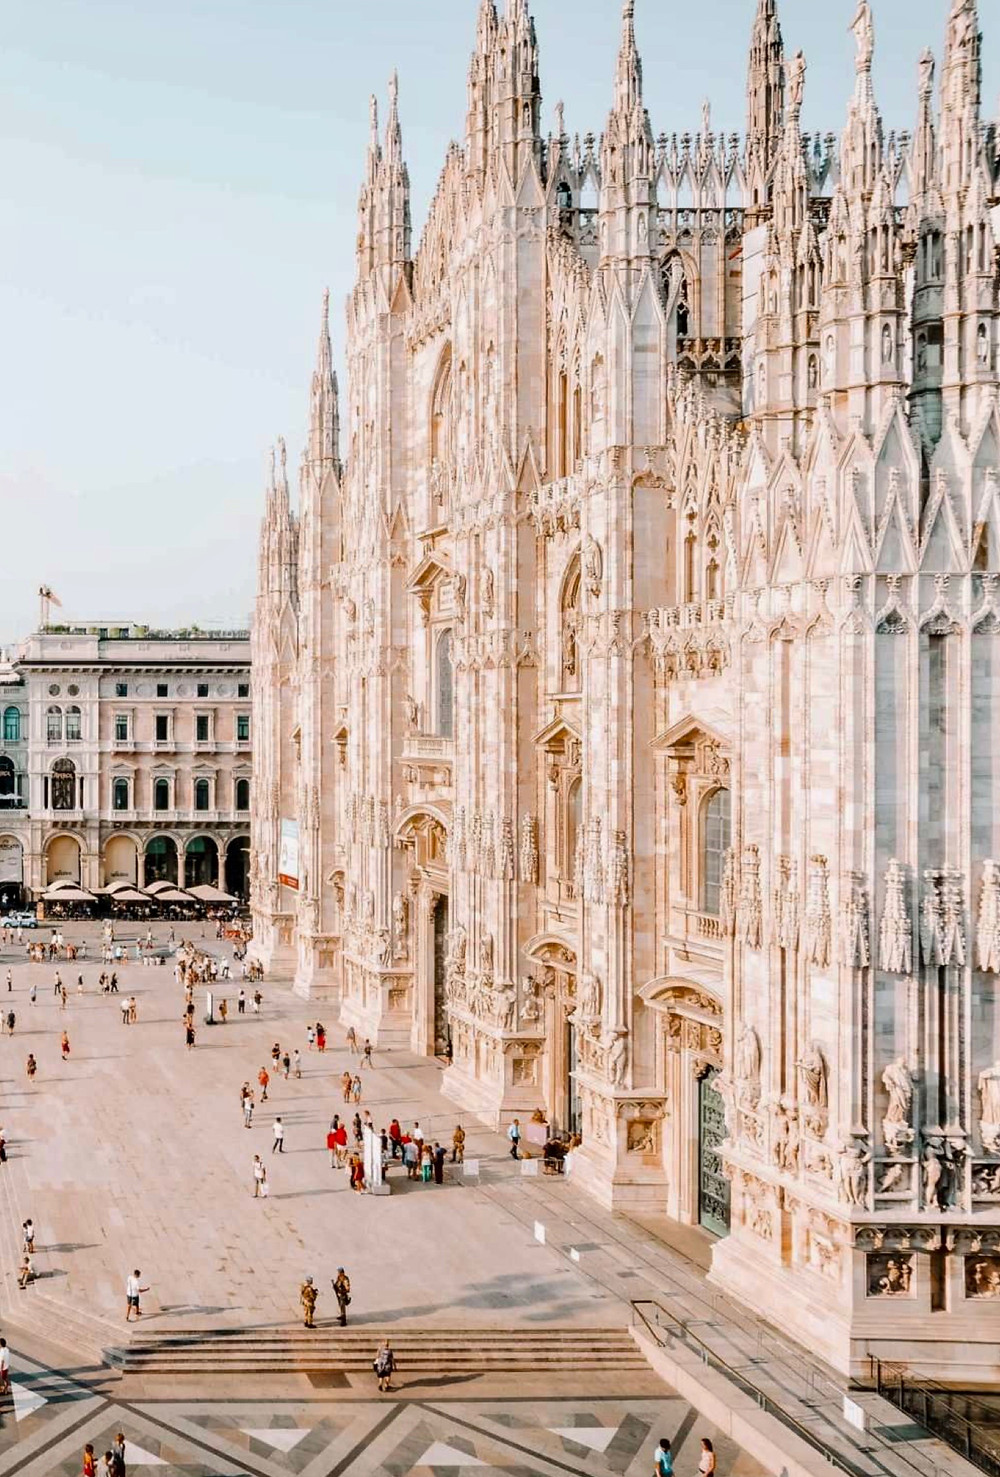 the Gothic facade of the Duomo, Milan's Cathedral